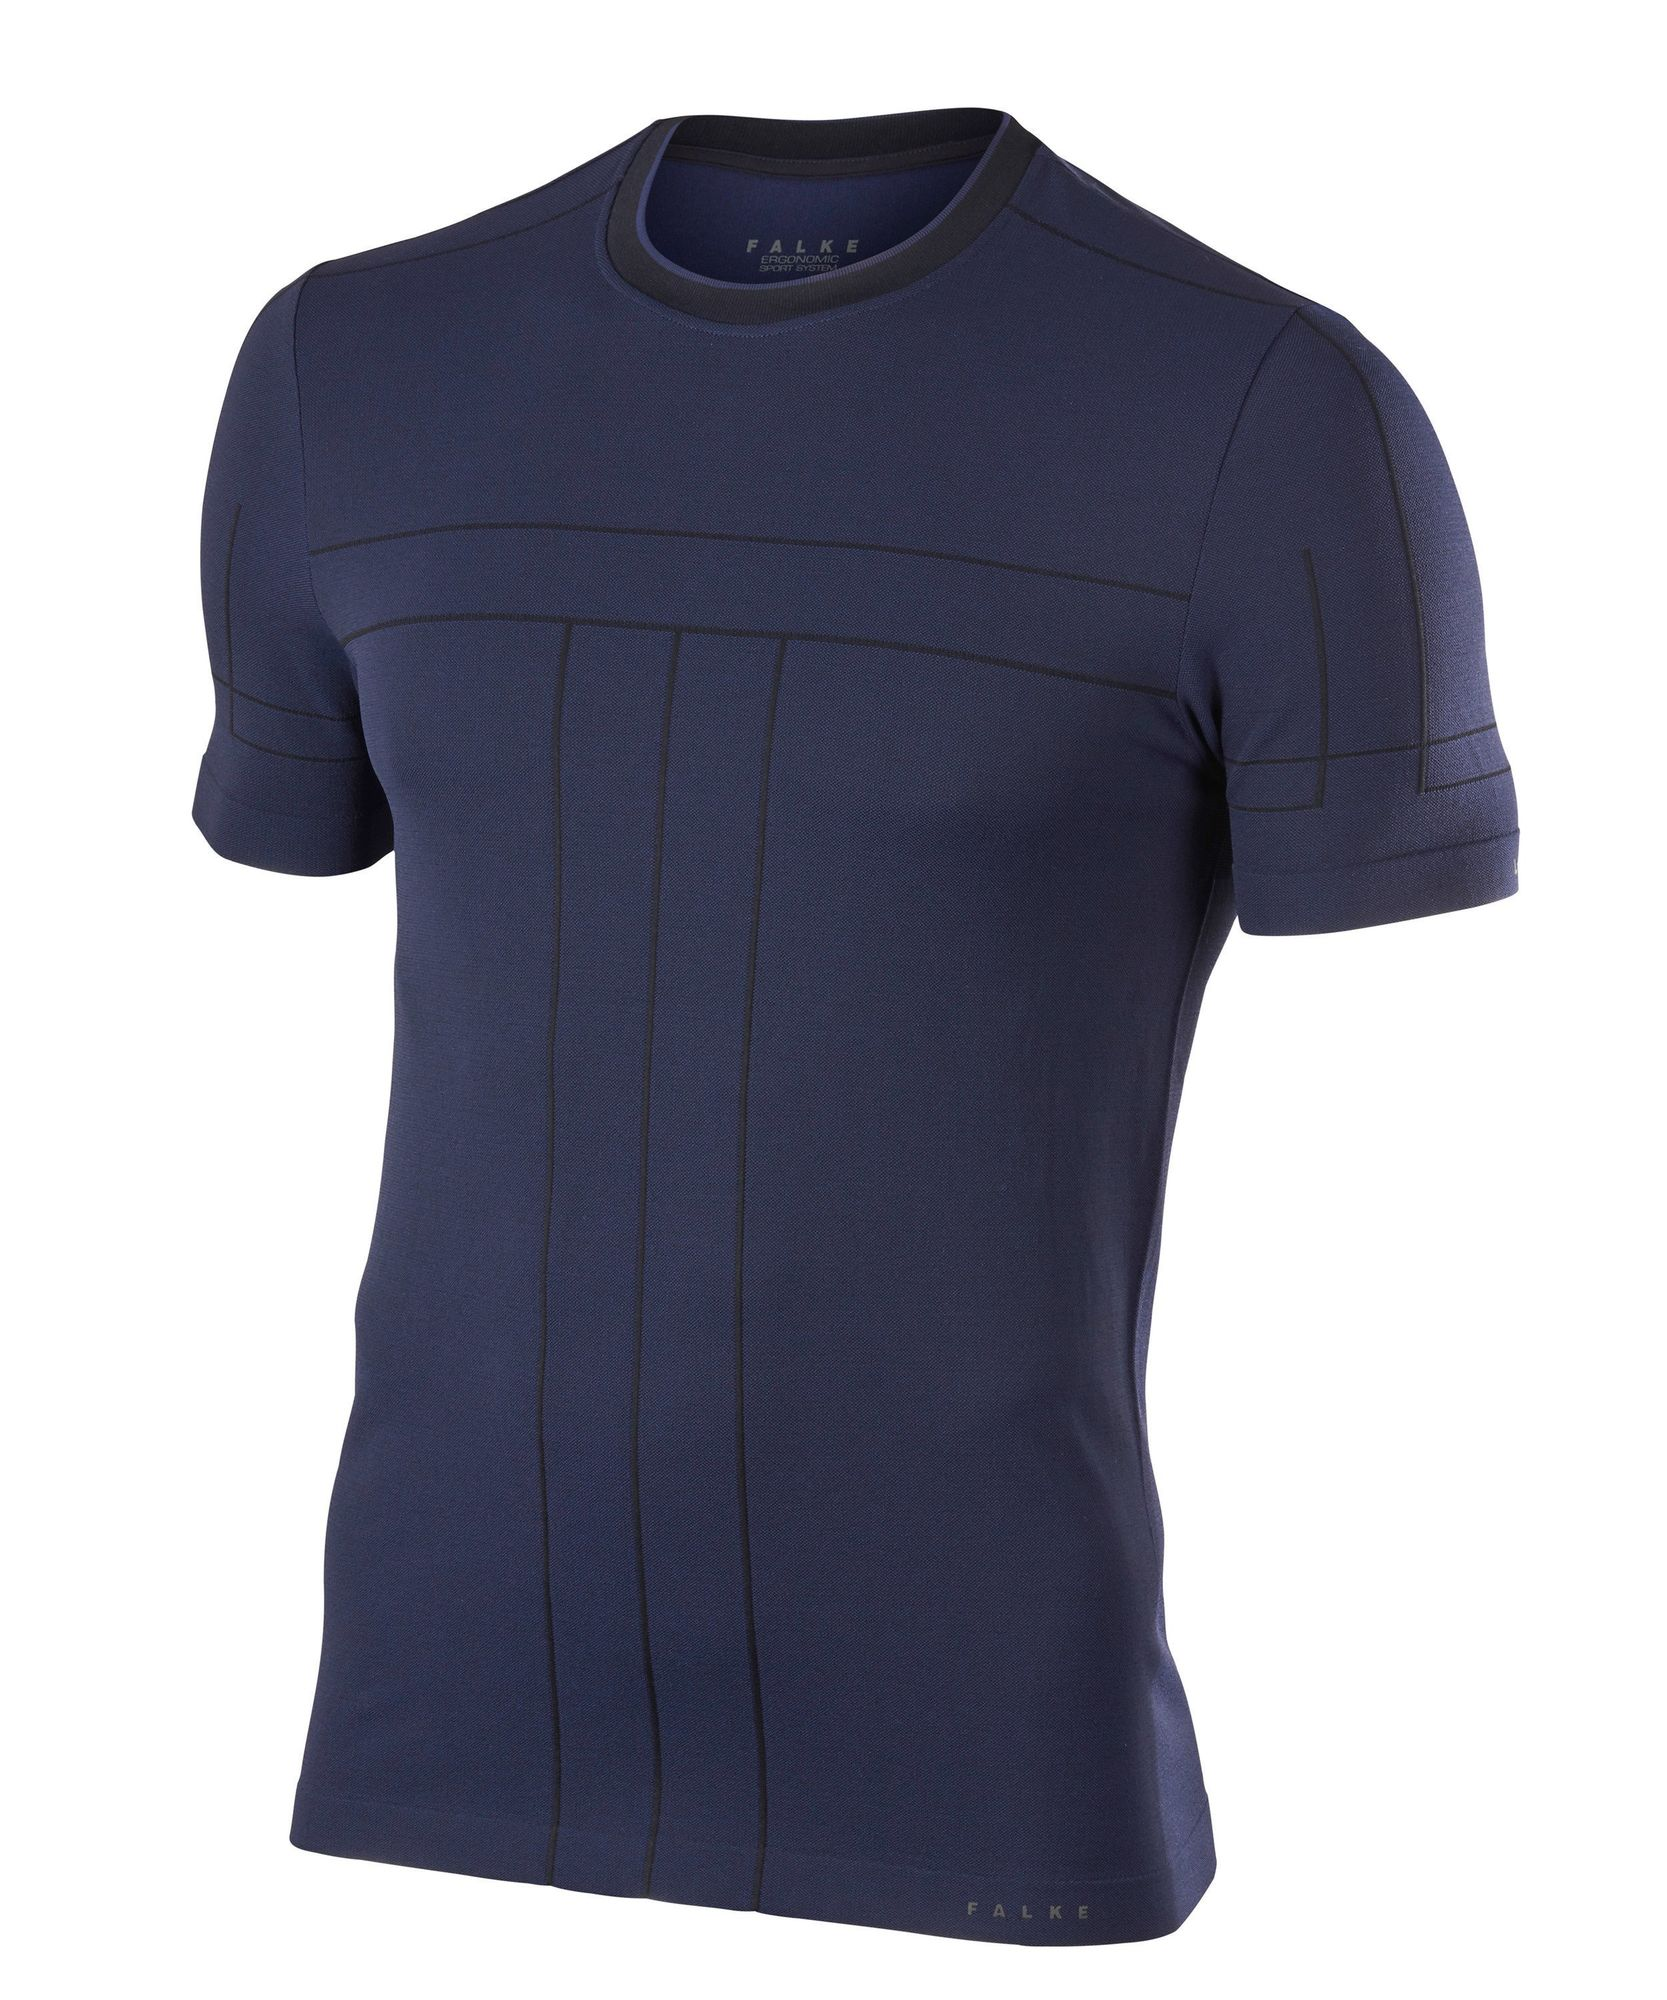 Falke Basic Shirt in Dunkelblau